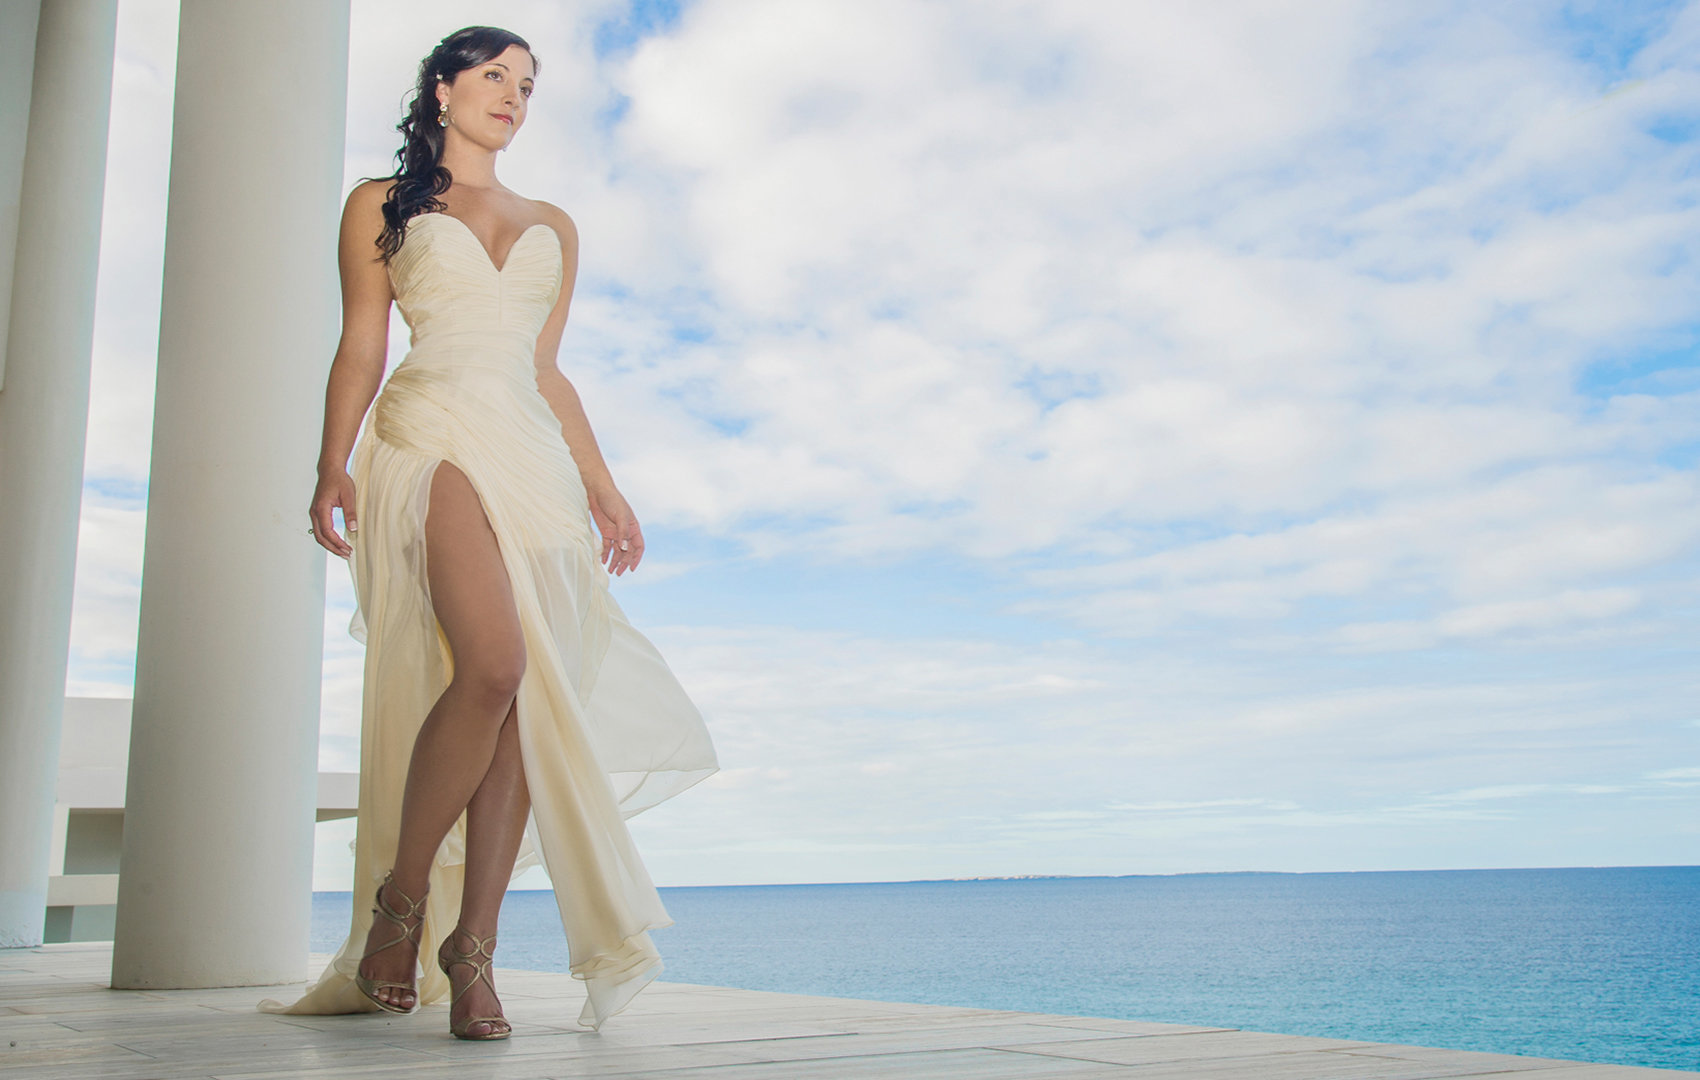 Wedding photographers on Maui | Kauai | Oahu | Big Island